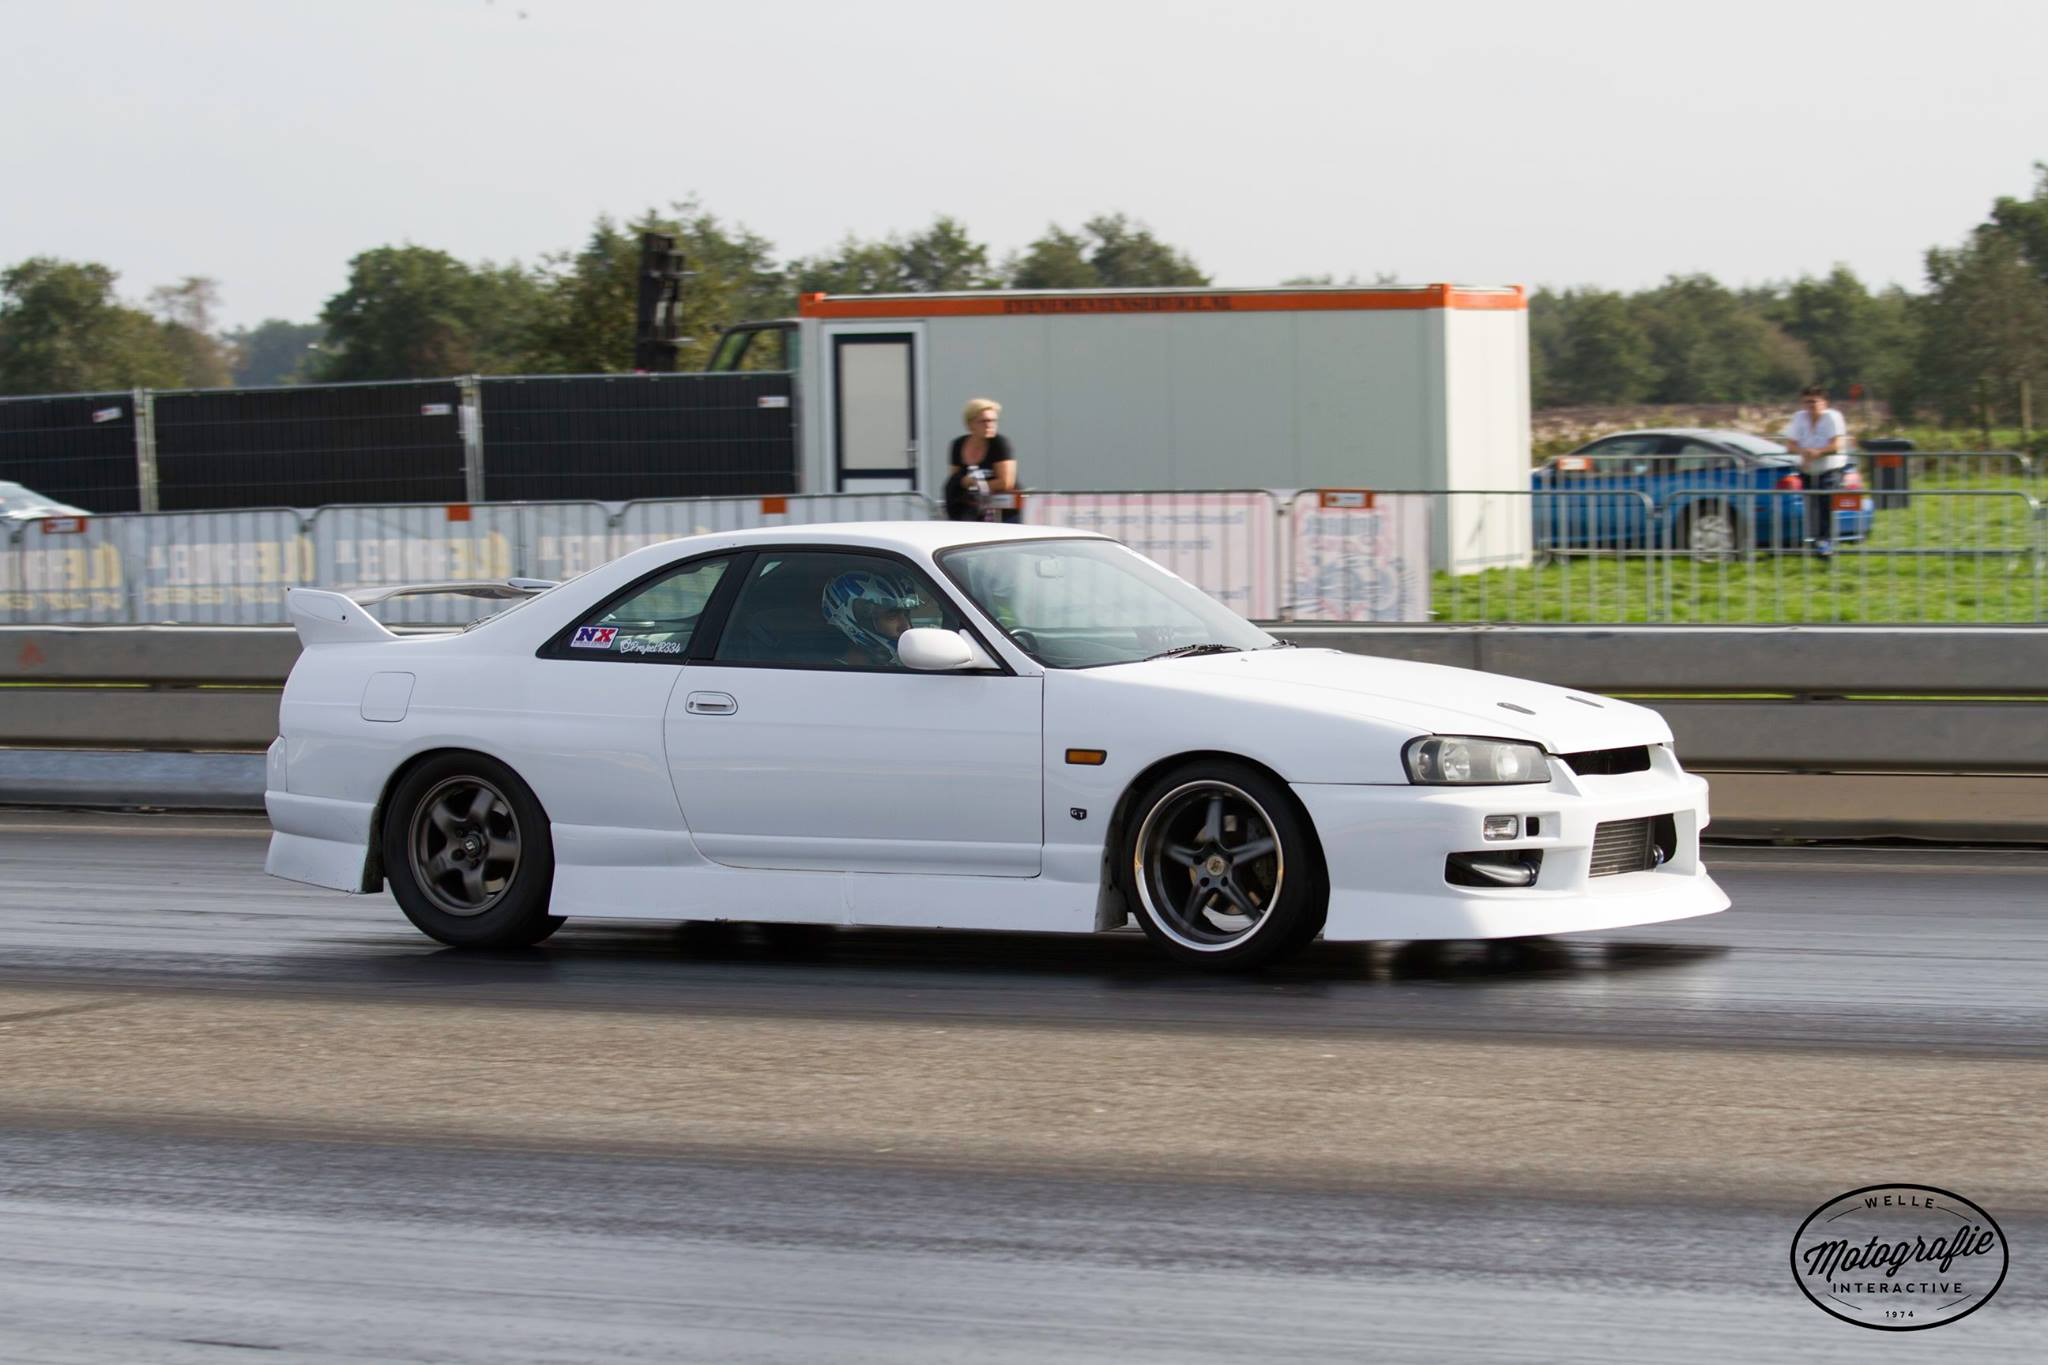 Project R334 from The Netherlands